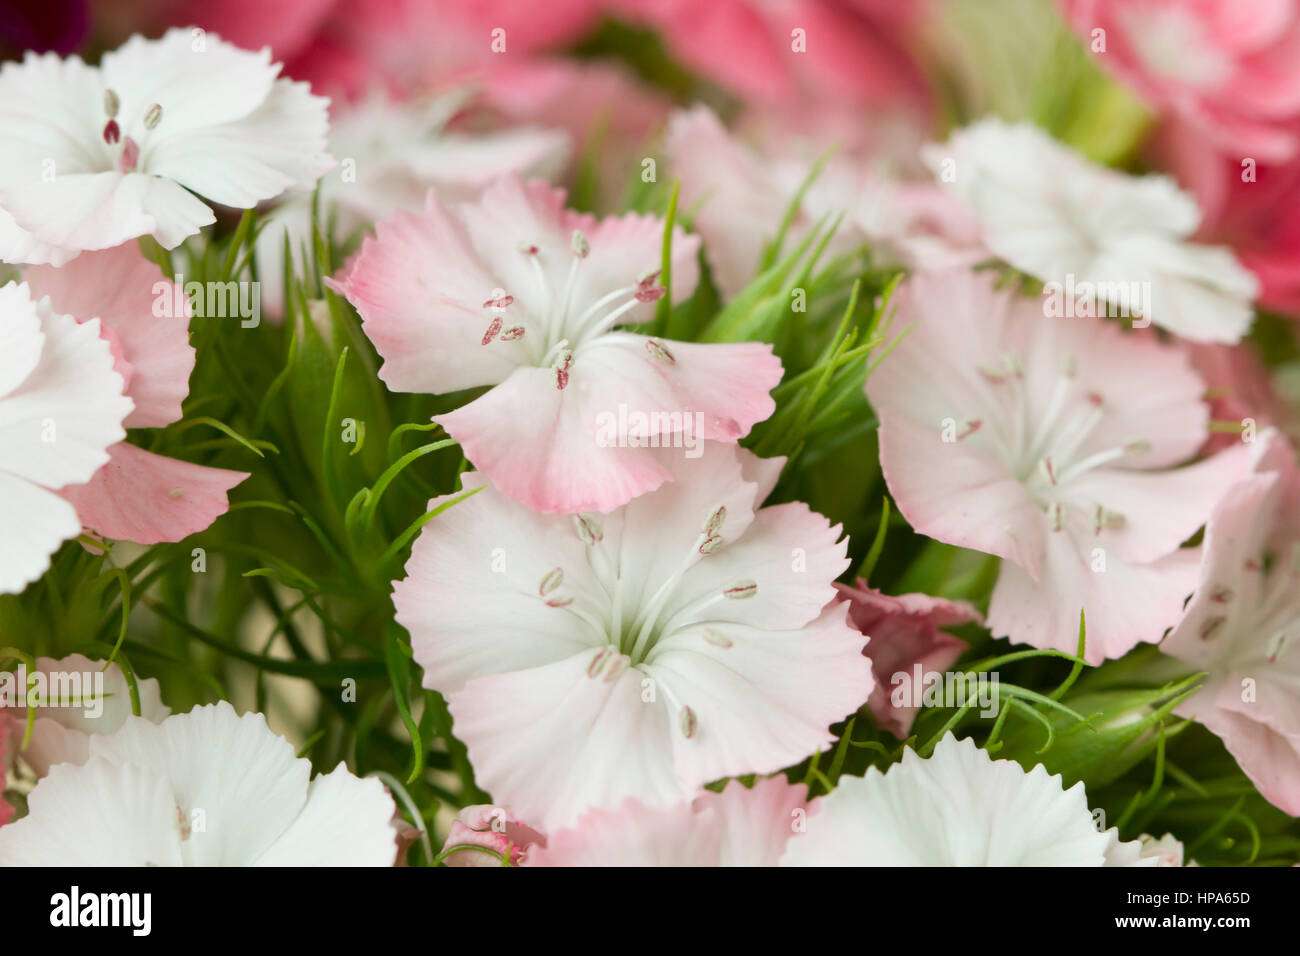 Pink and white sweet william like spring background outdoor blur pink and white sweet william like spring background outdoor blur mightylinksfo